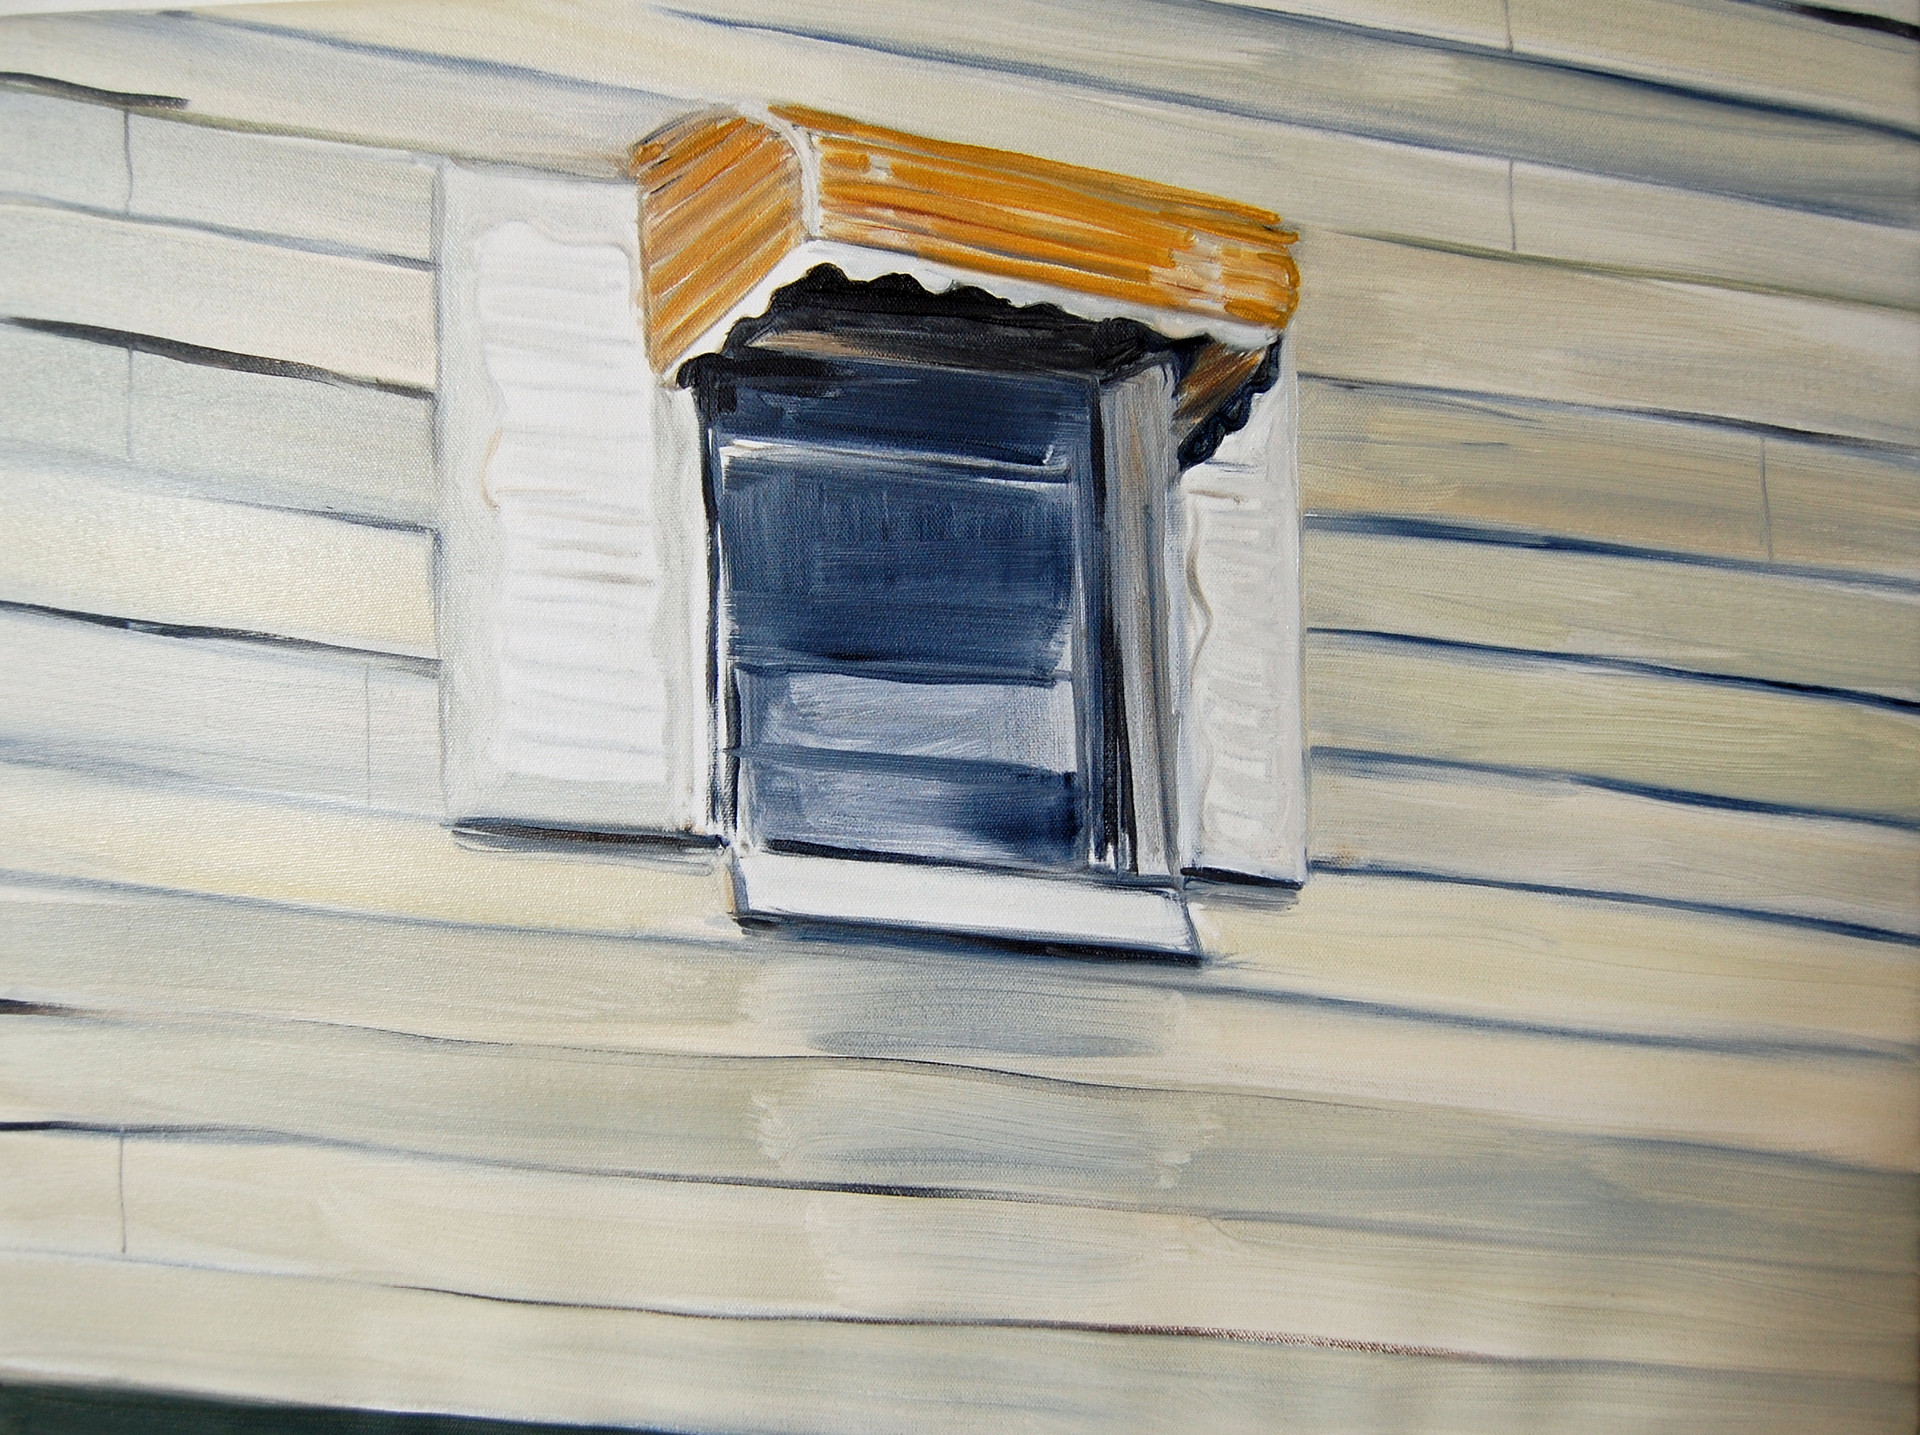 Gowanus Window, oil paint on canvas, 24 x 36 inches